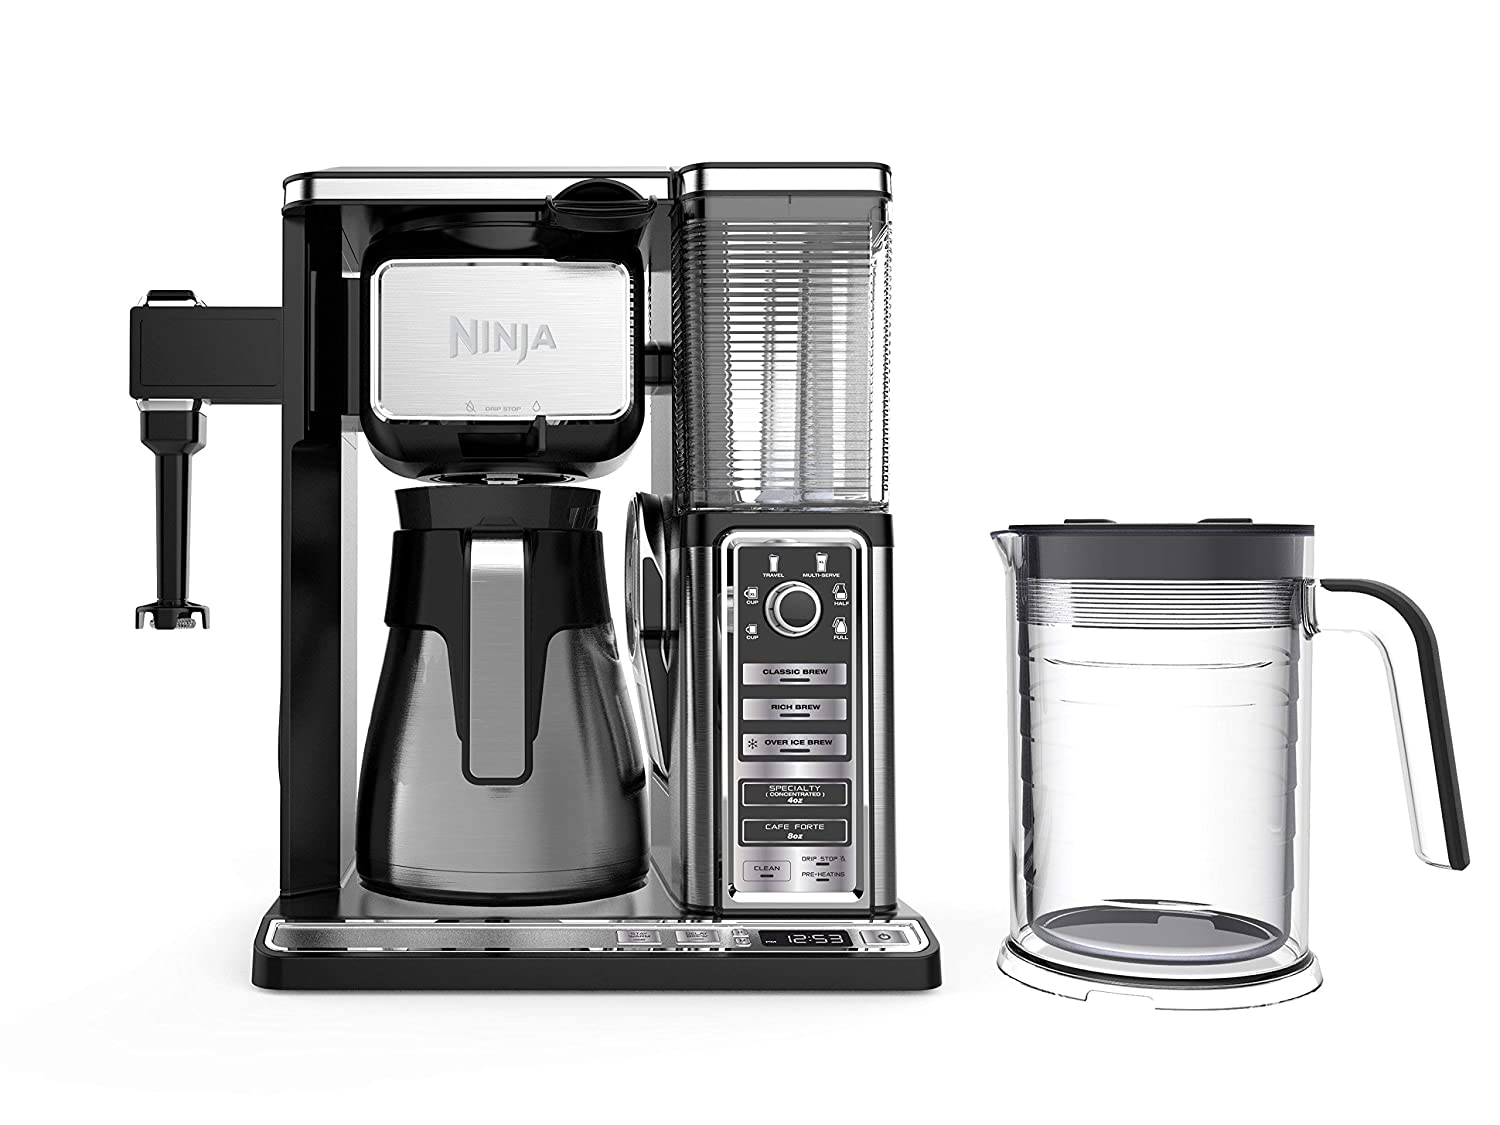 Ninja Coffee Bar Auto-iQ Programmable Coffee Maker with 6 Brew Sizes, 5 Brew Options, Milk Frother, Removable Water Reservoir, Stainless Carafe ...